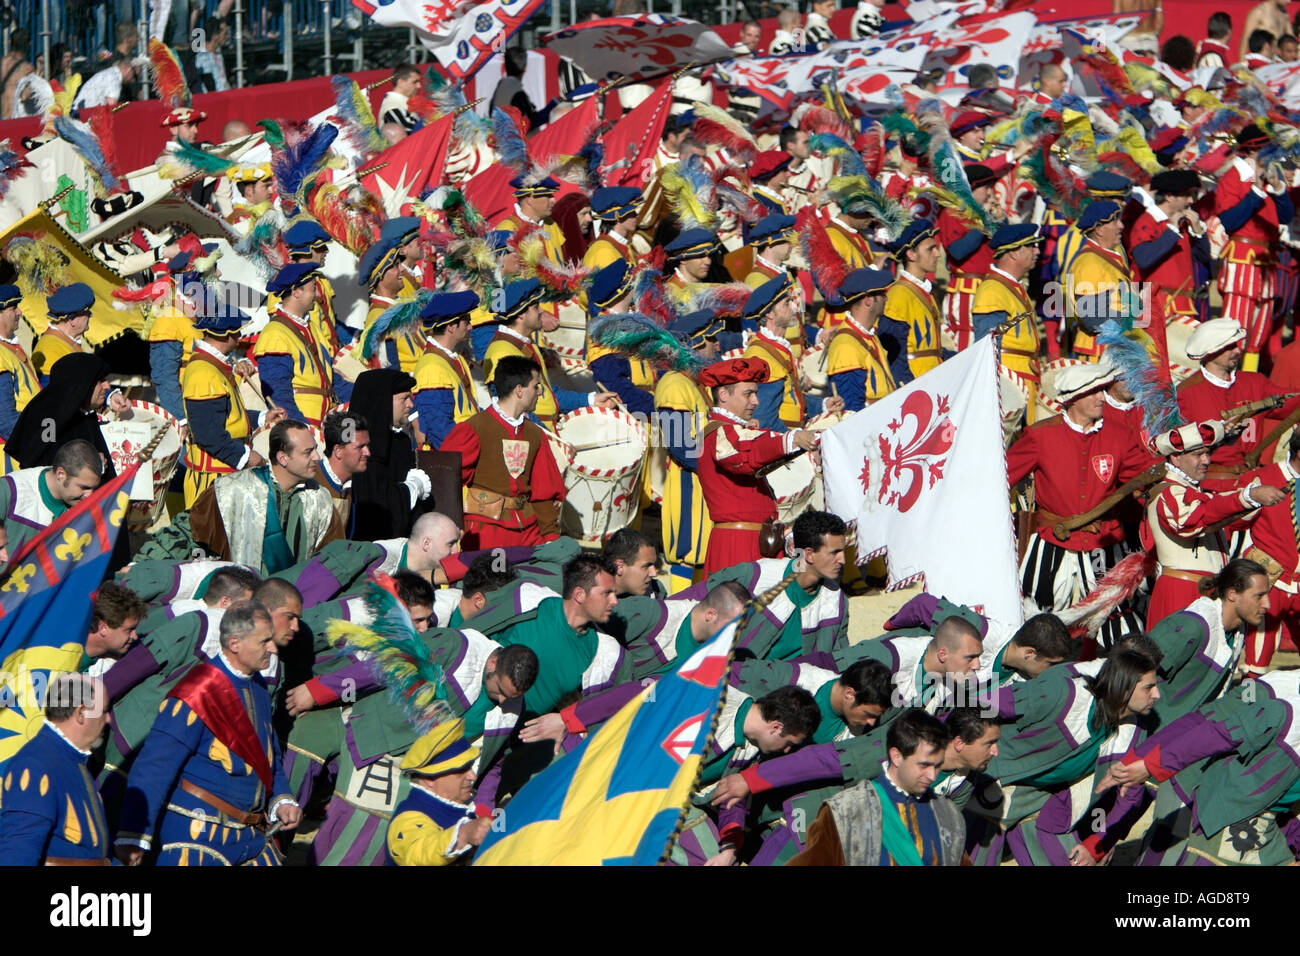 The colourful parade of the Calcio Storico in the Piazza Santa Croce, Florence, Italy. Stock Photo